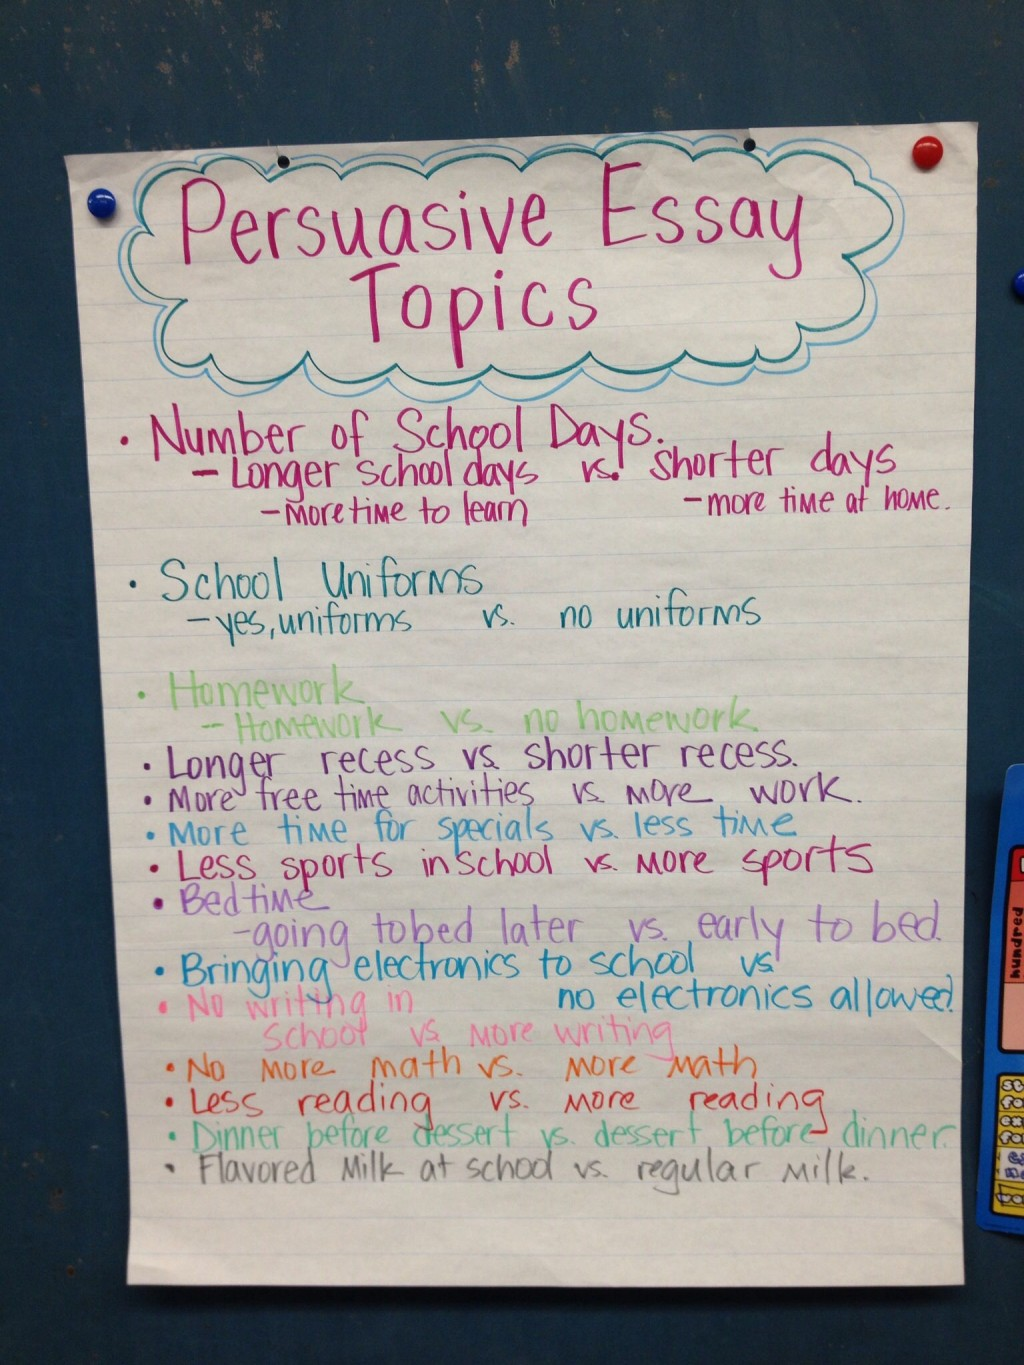 004 Topics For Persuasive Essays Essay Incredible 5th Graders Good A Middle Schoolers High School Large